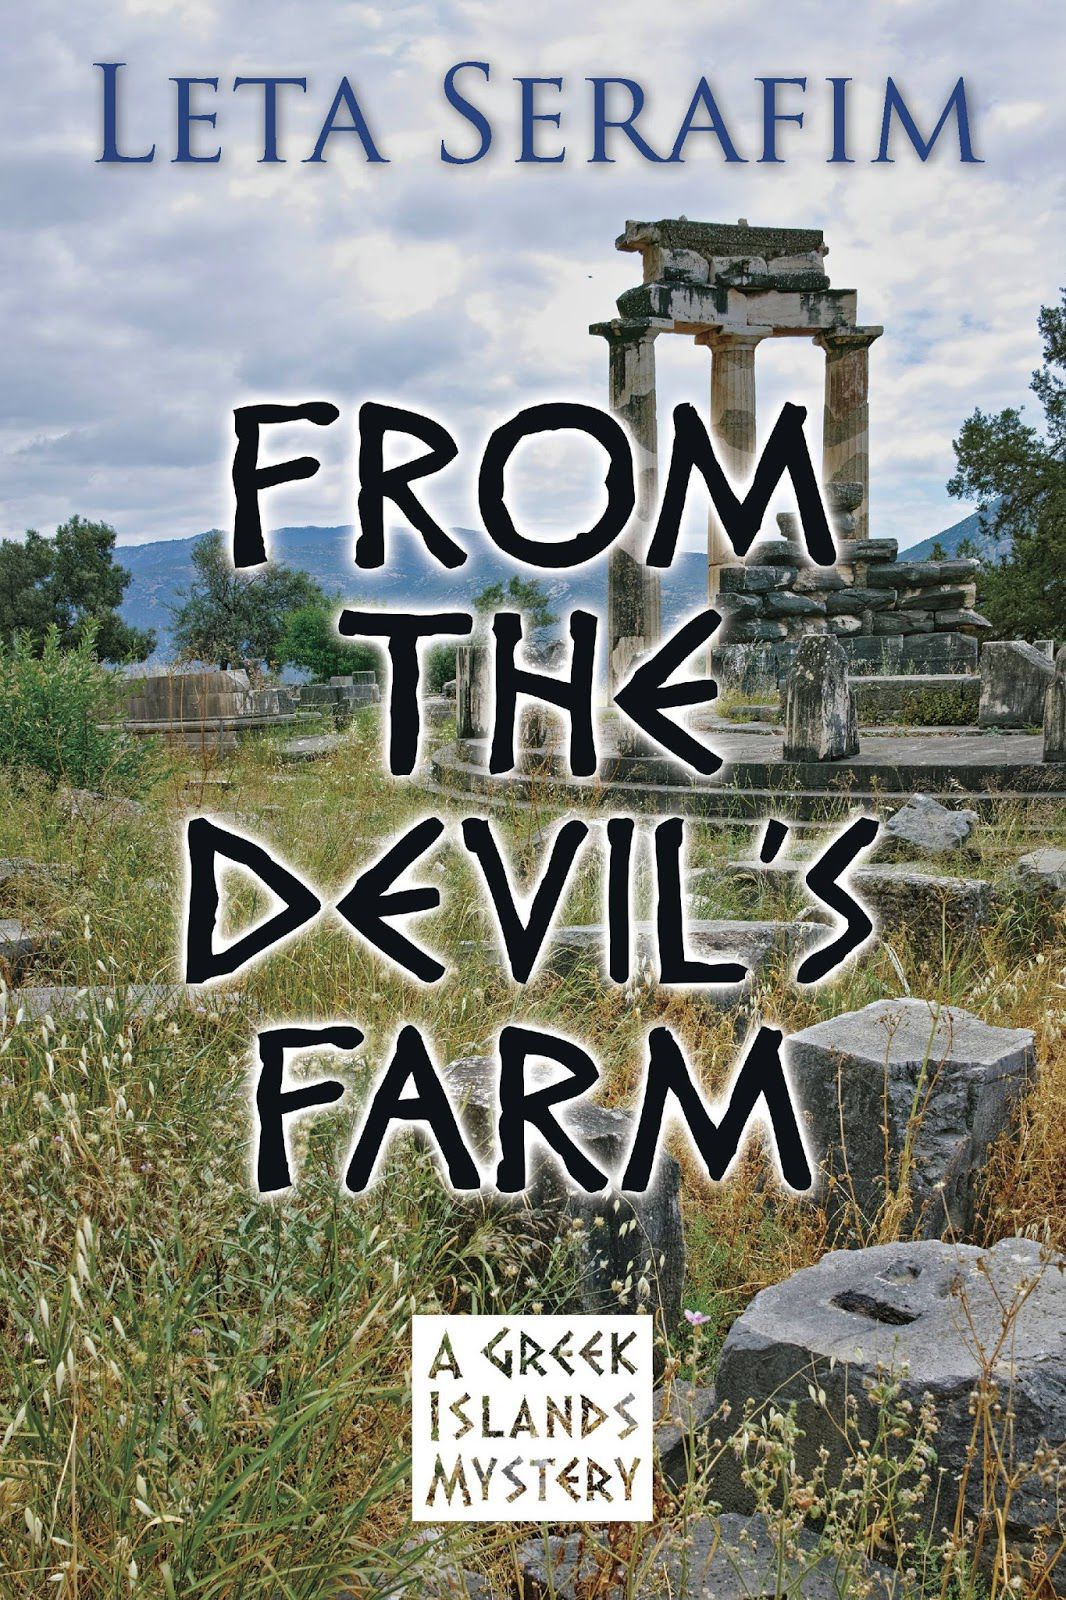 From the Devil's Farm, a Greek Islands Mystery